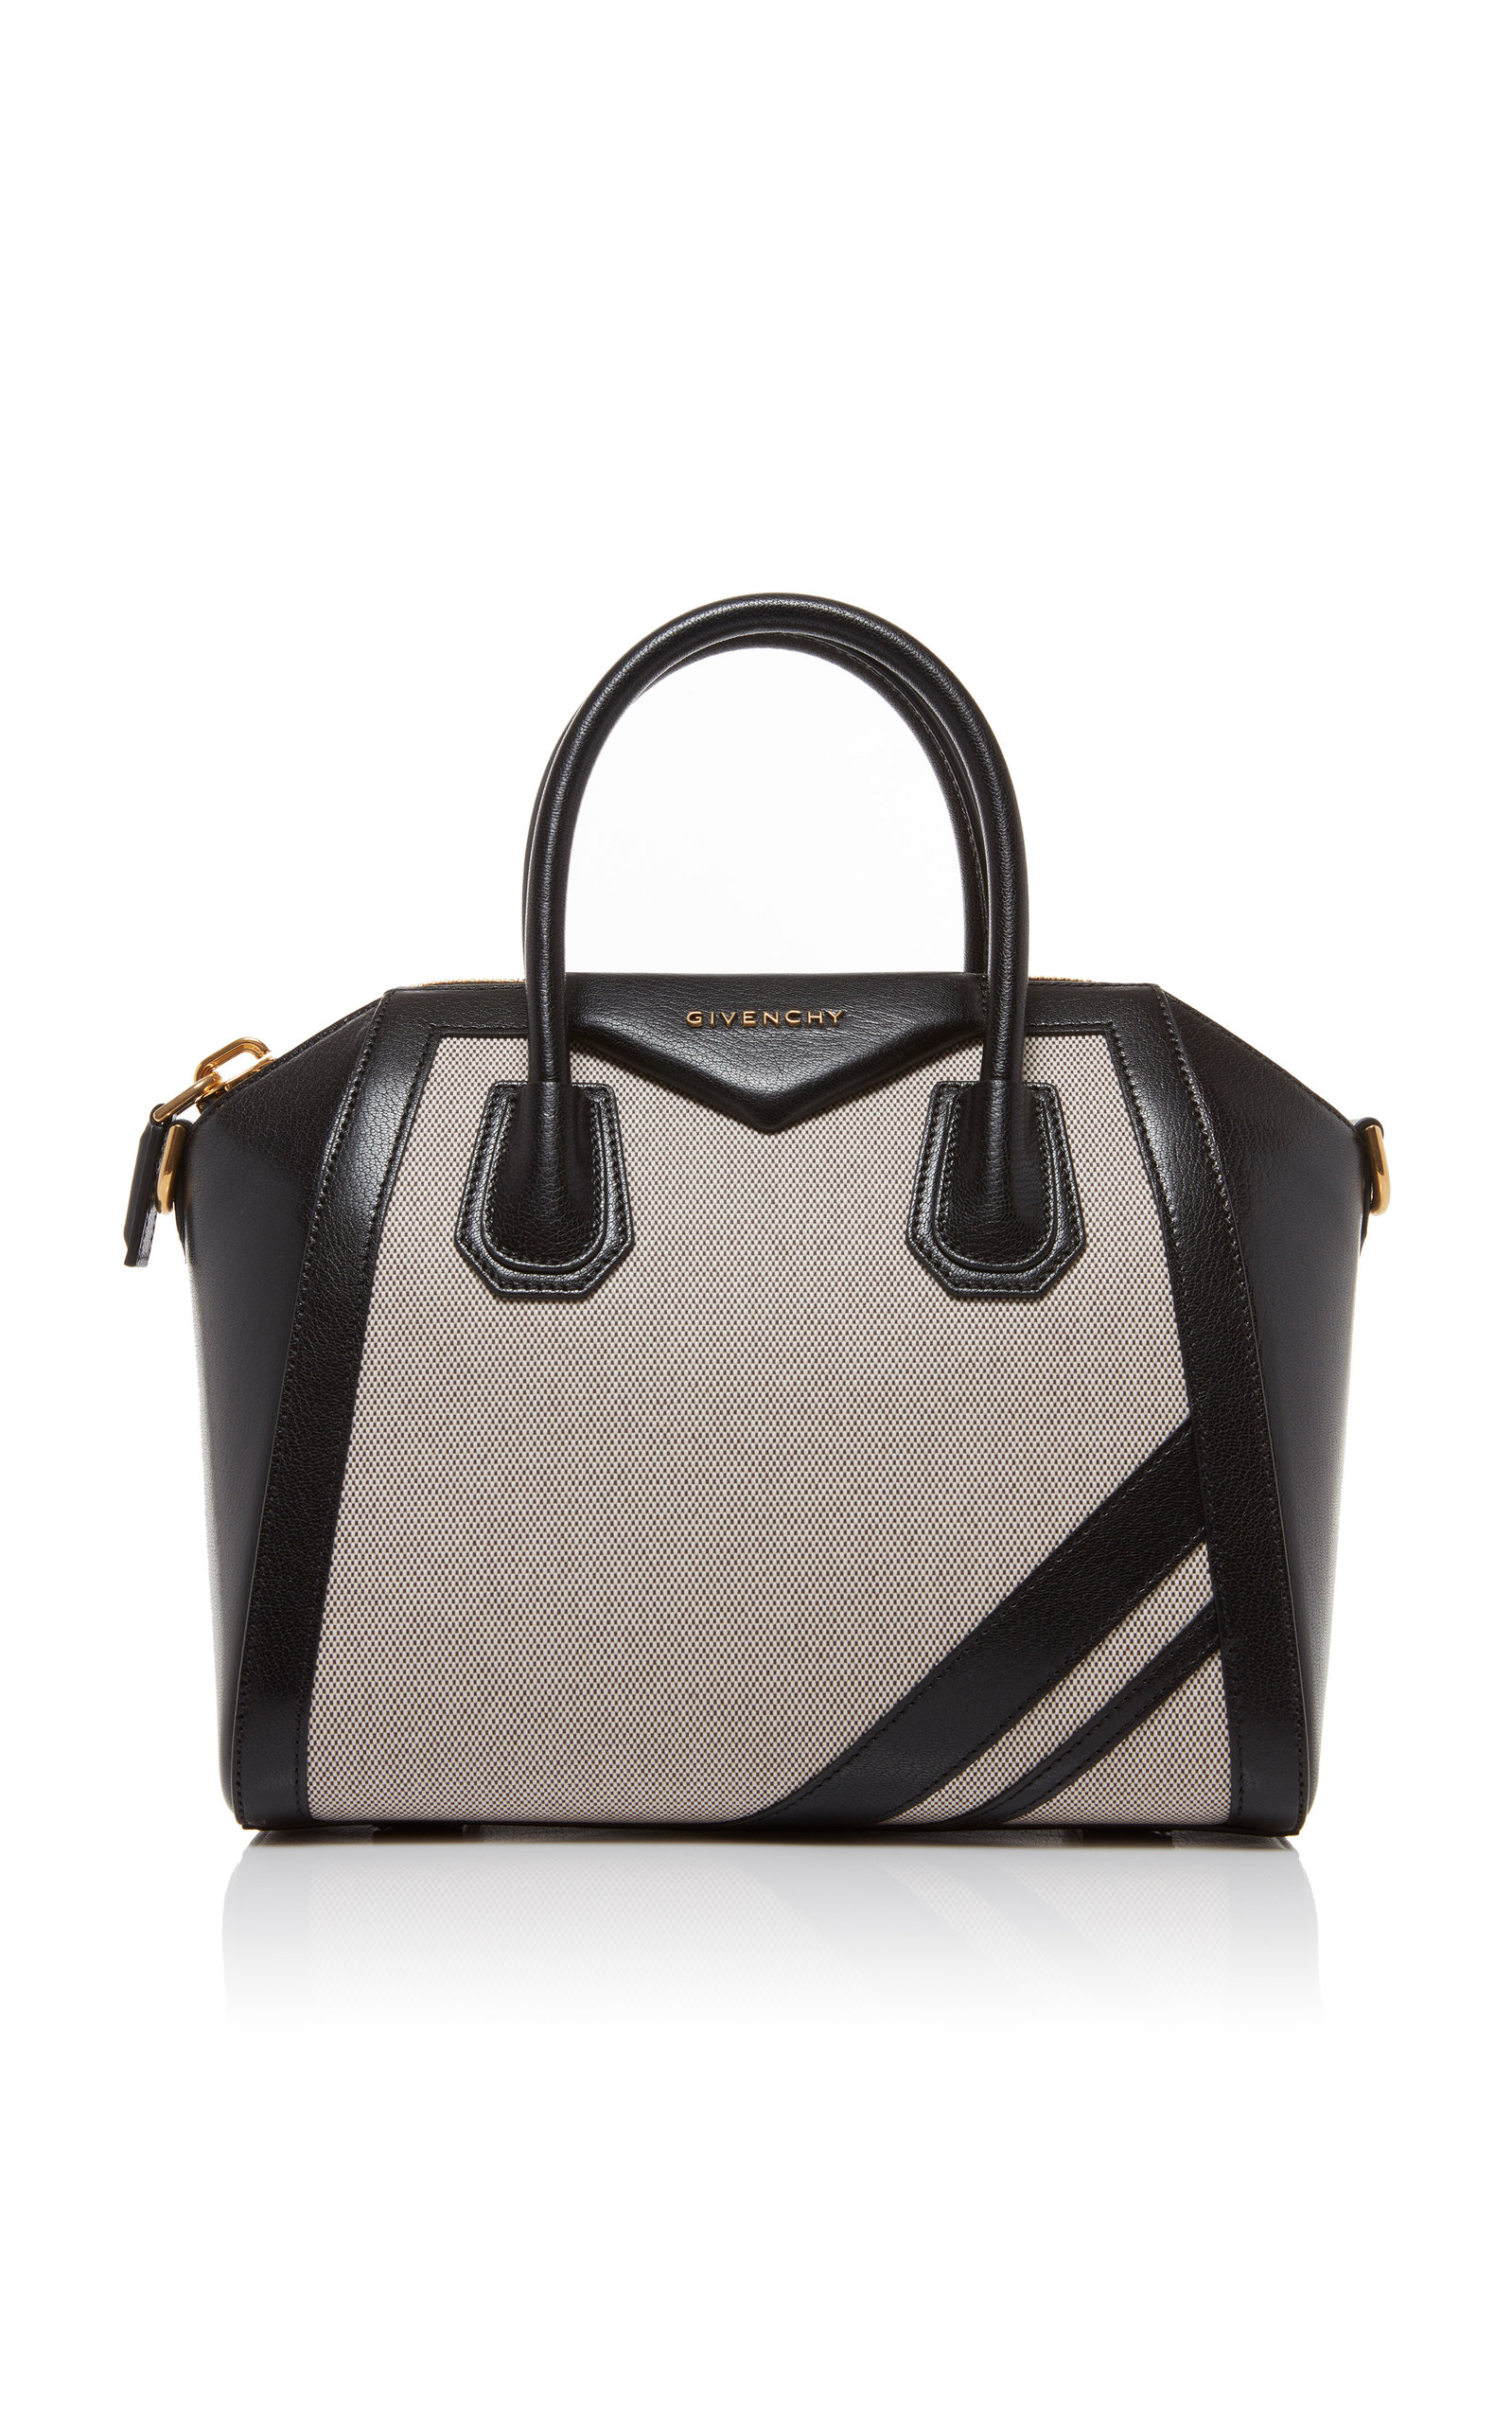 880aa7bfbc GivenchyAntigona Small Leather and Linen Tote. CLOSE. Loading